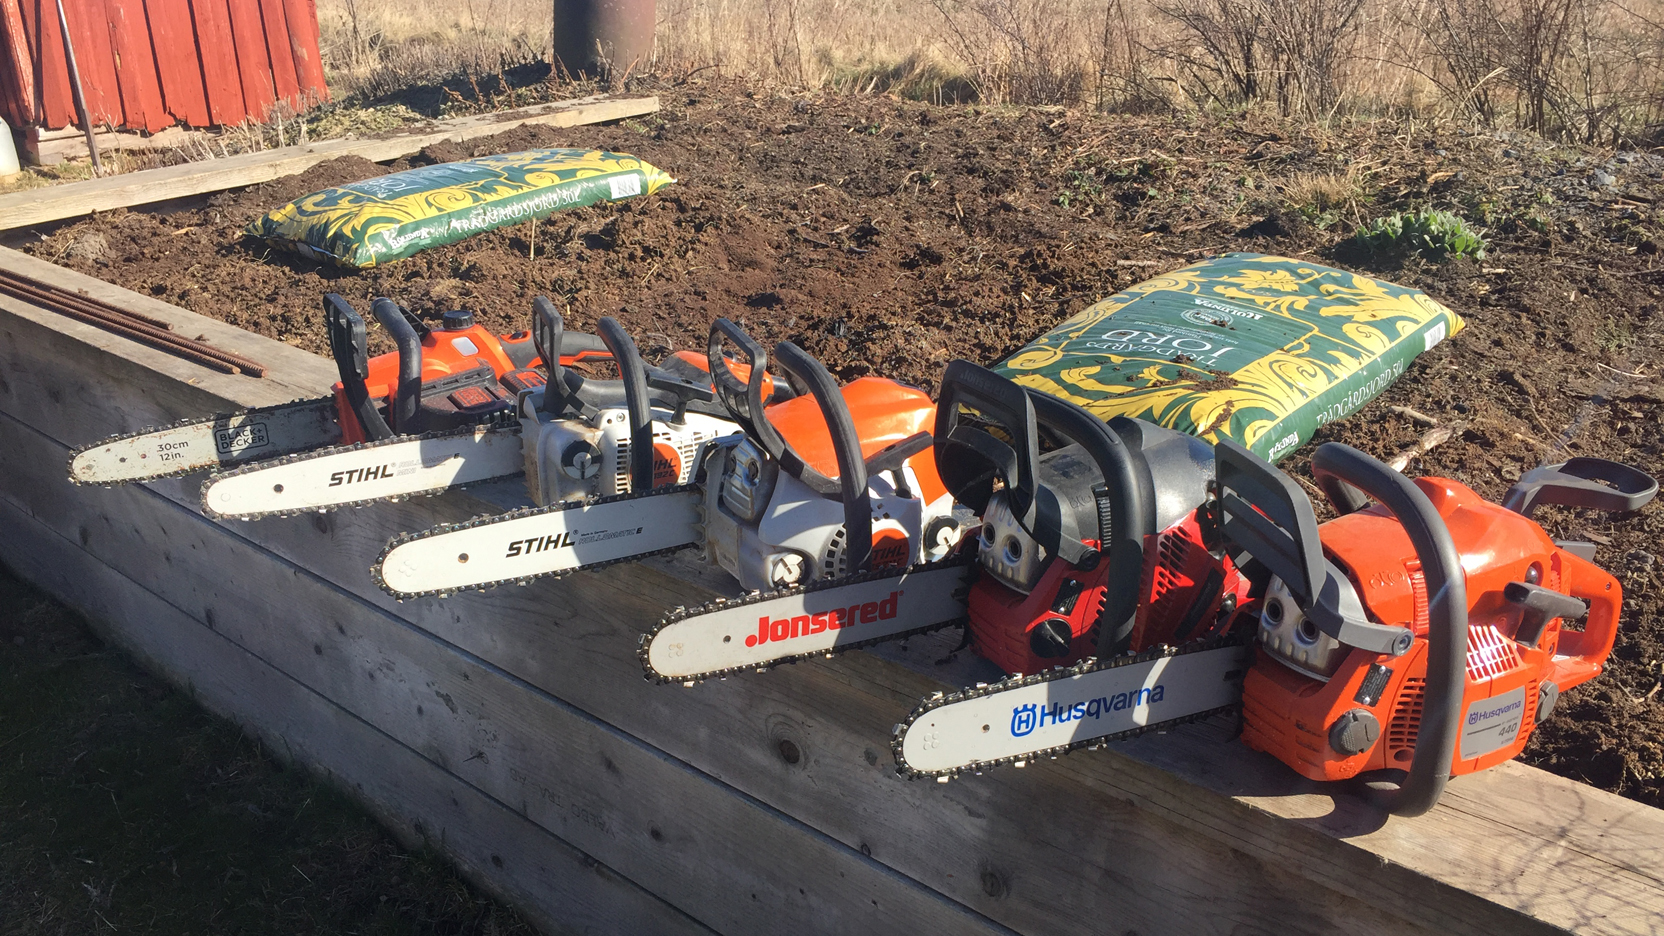 The 10 best chainsaws to buy in 2019 By PriceRunner